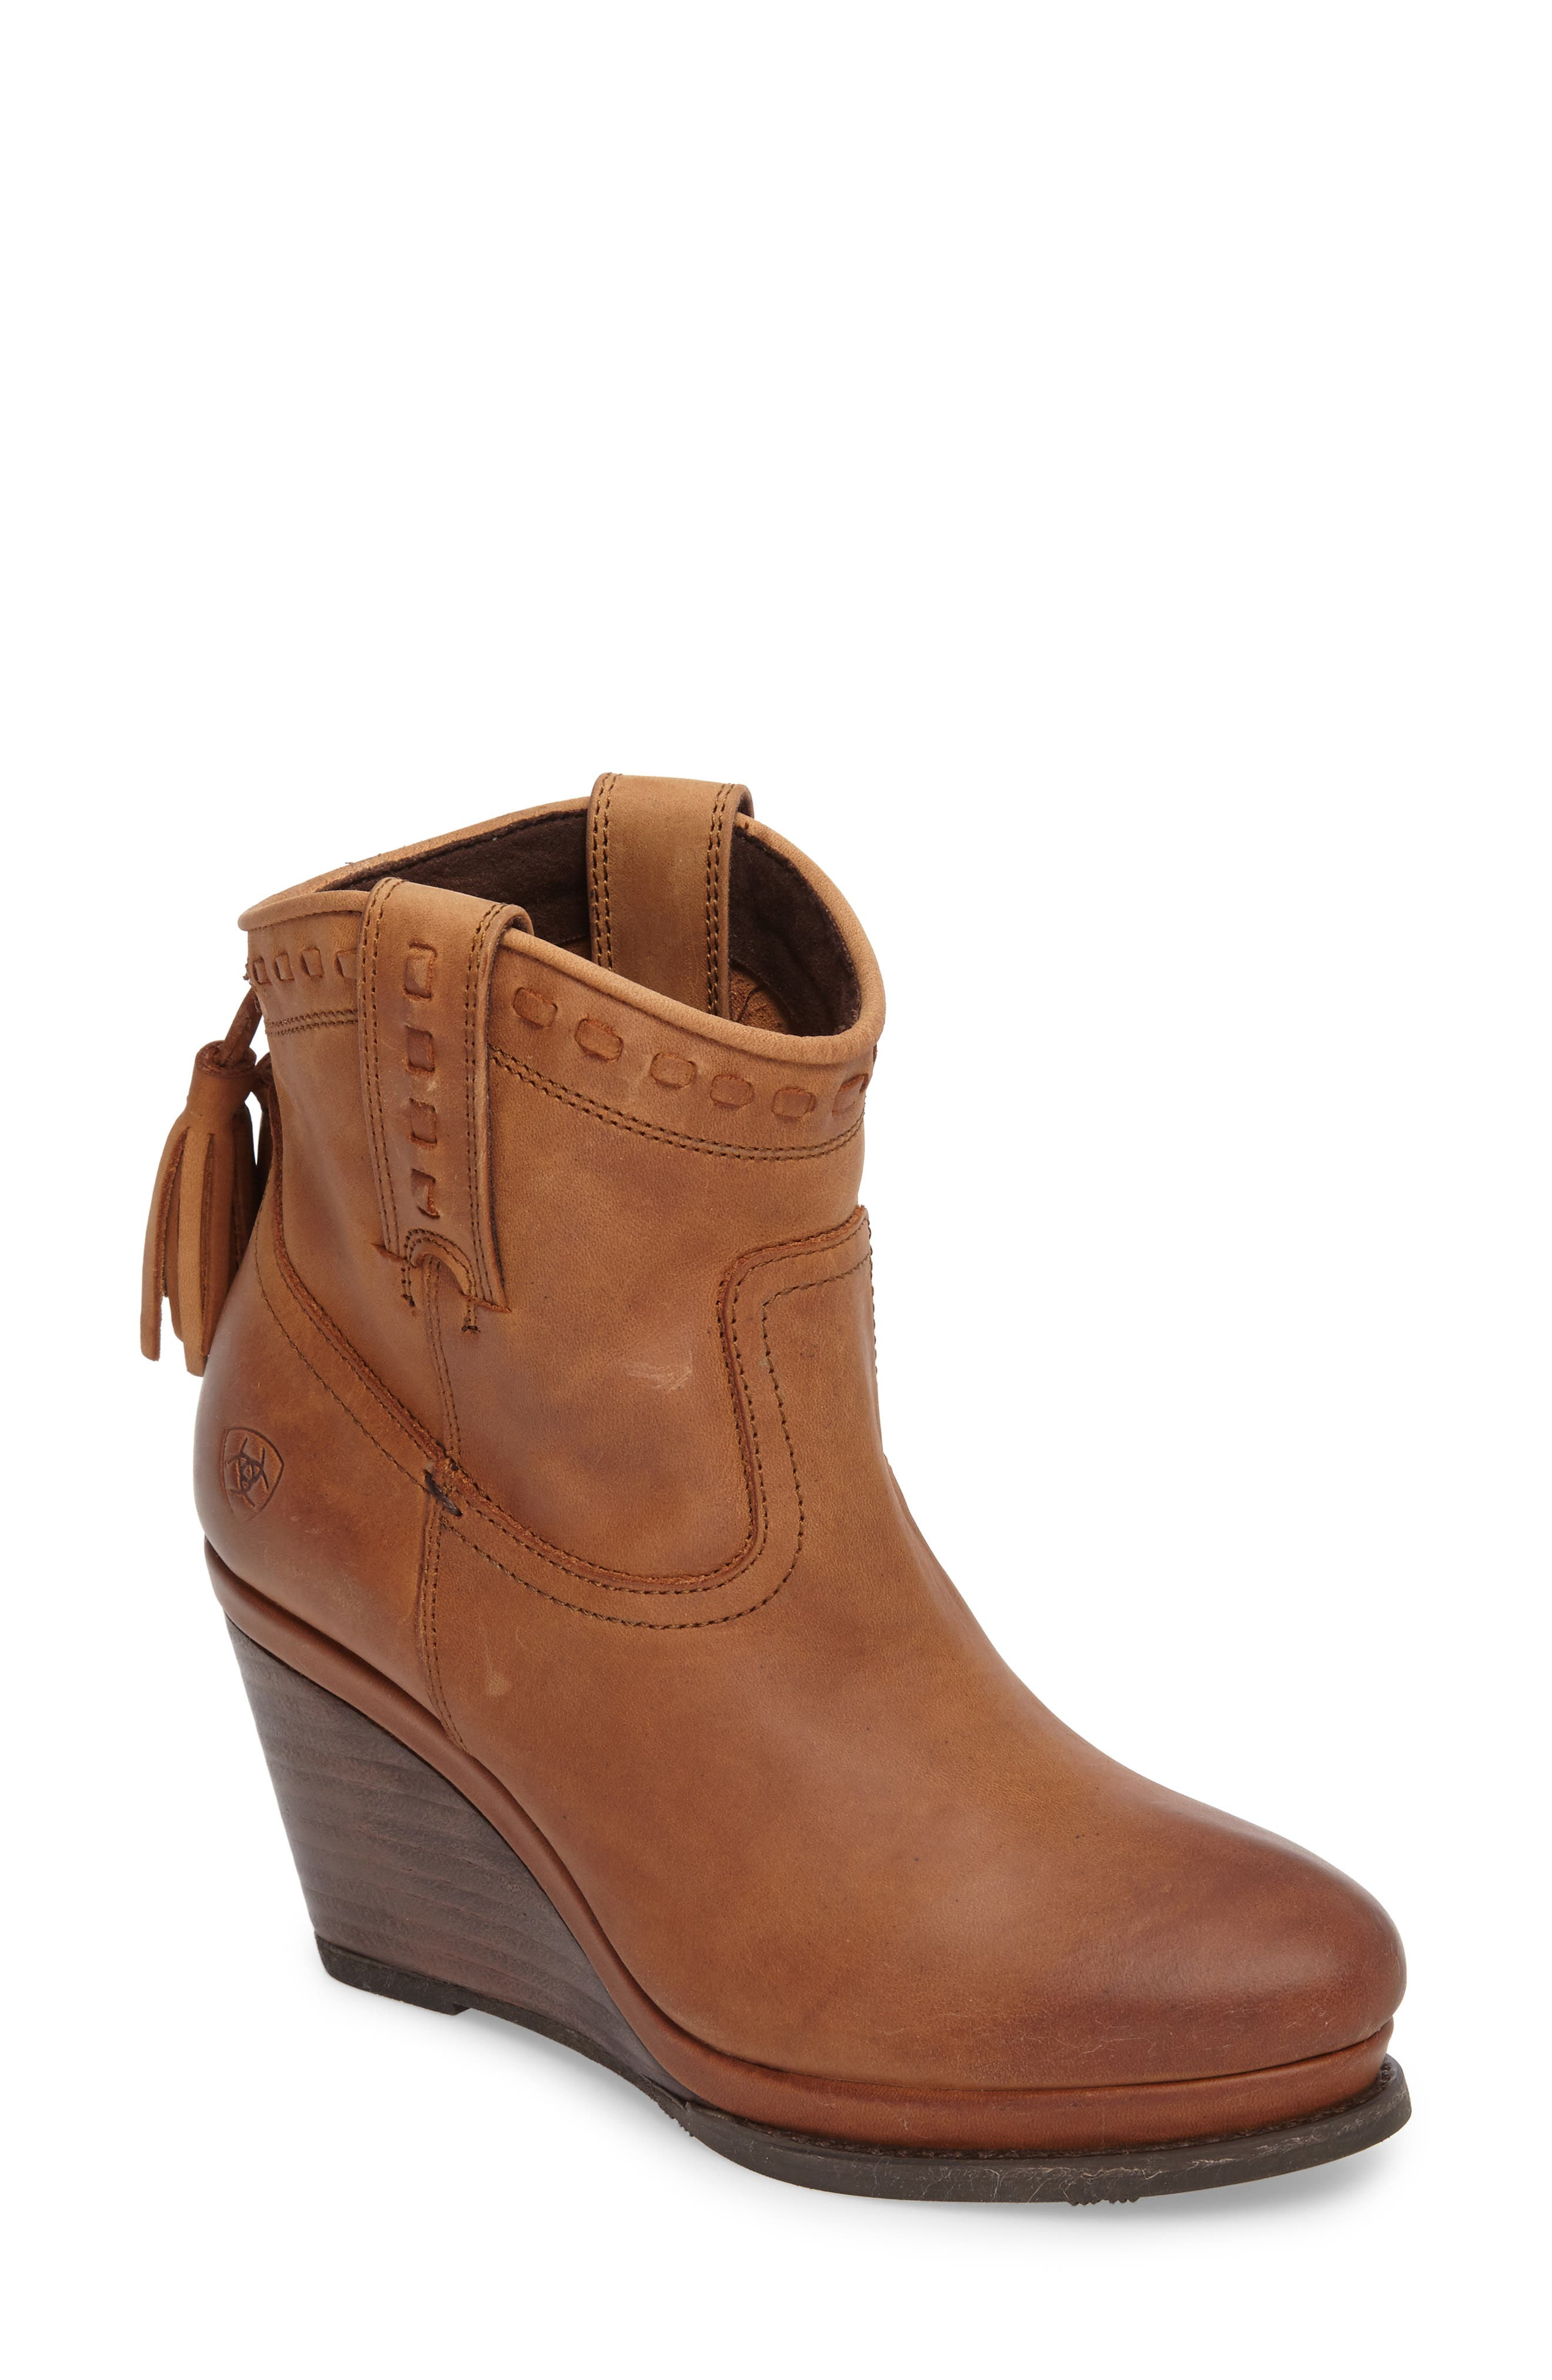 Alternate Image 1 Selected - Ariat Broadway Western Wedge Boot (Women)